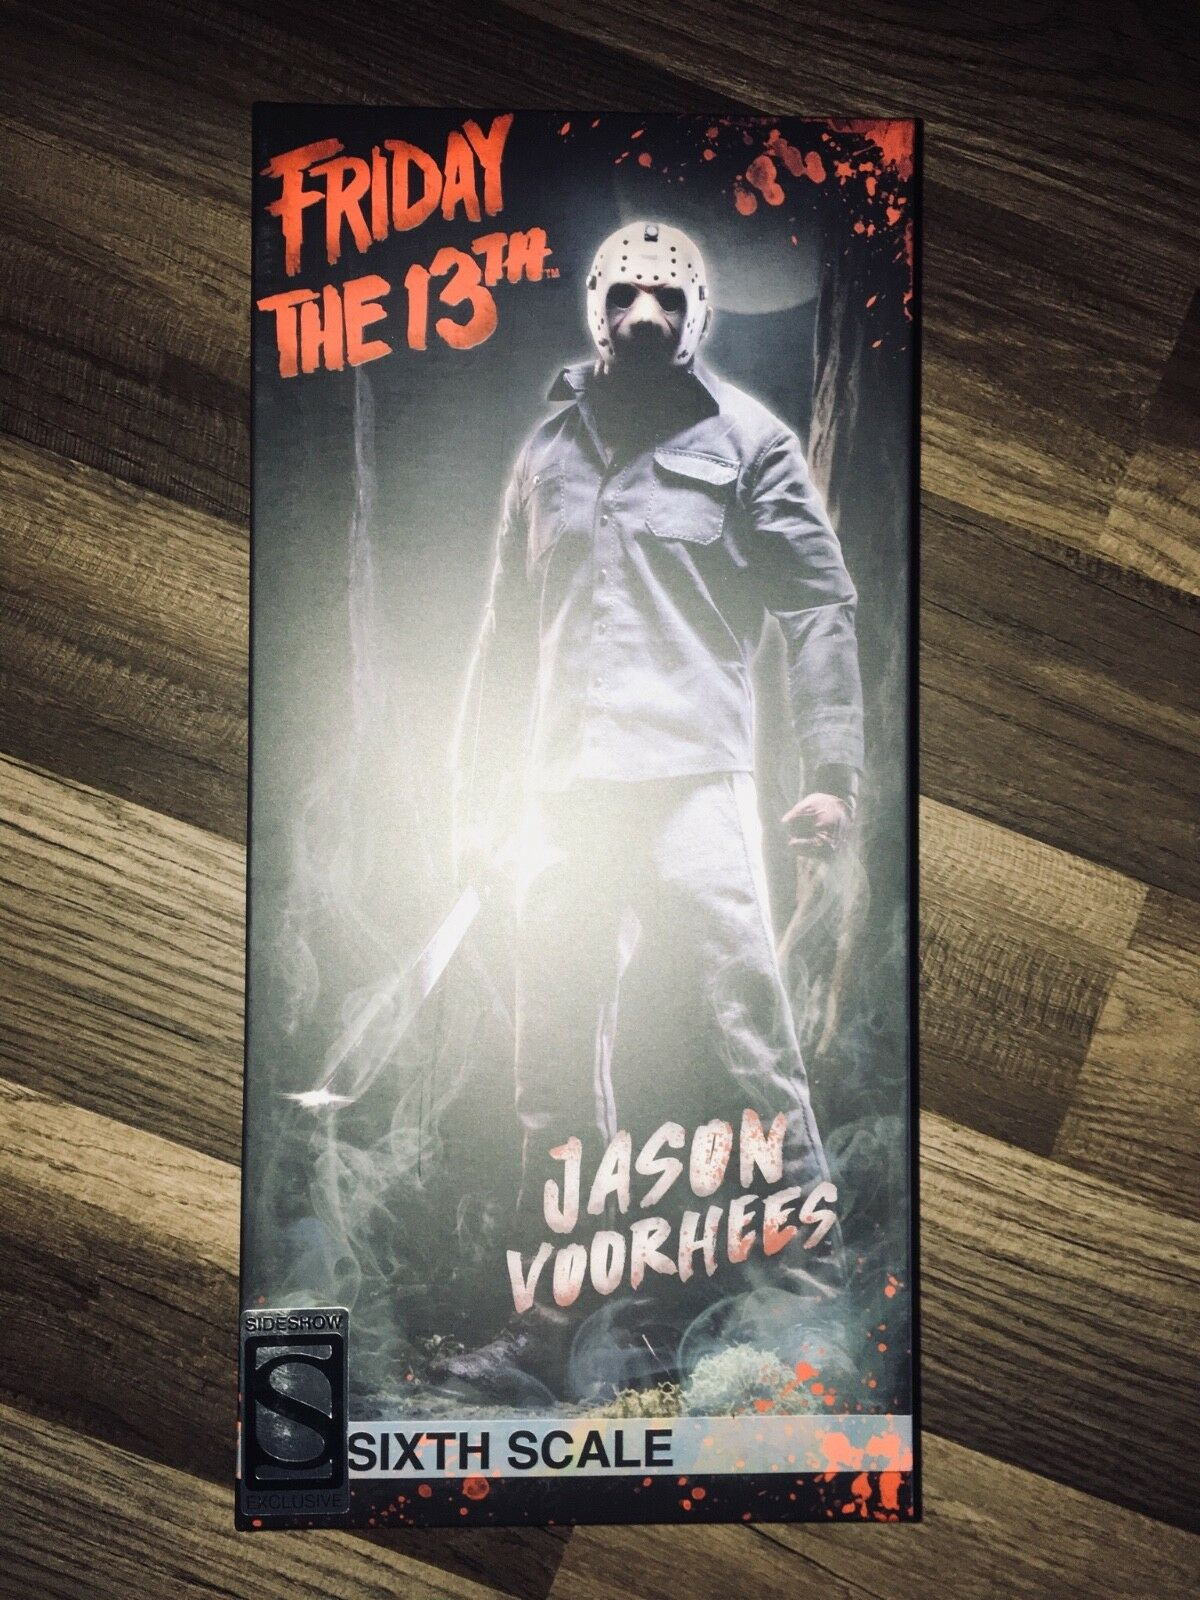 FRIDAY THE 13TH EXCLUSIVE JASON VOORHEES SIXTH SCALE FIGURE BRAND NEW